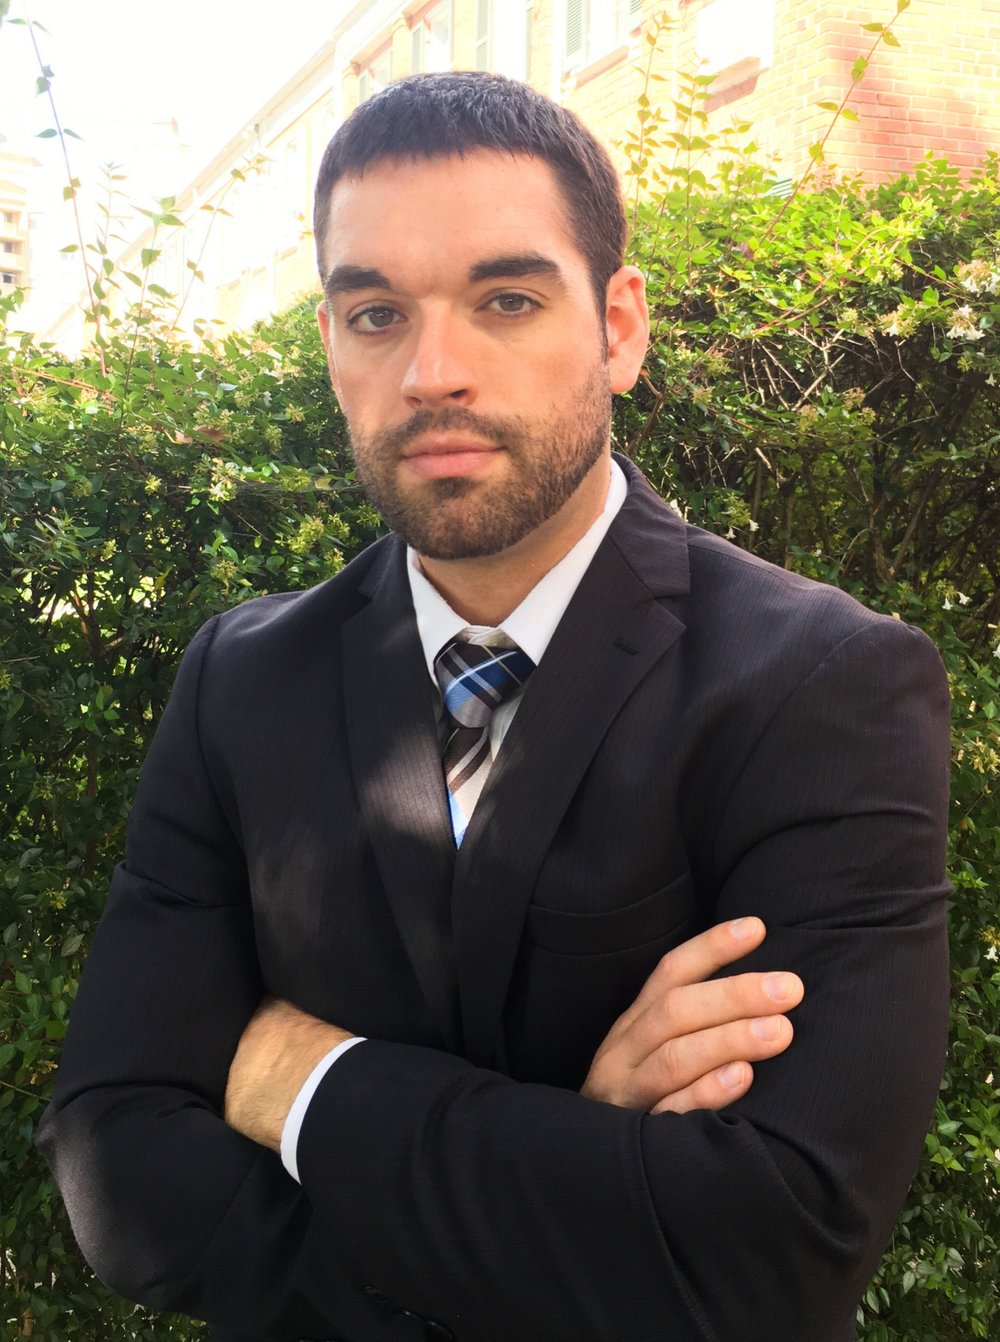 Michael Bender - Dr.Bender is an Intelligence Analyst at the Center for Security policy where he performs research and analysis on terrorist organizations, religion in politics and South Asian security issues.